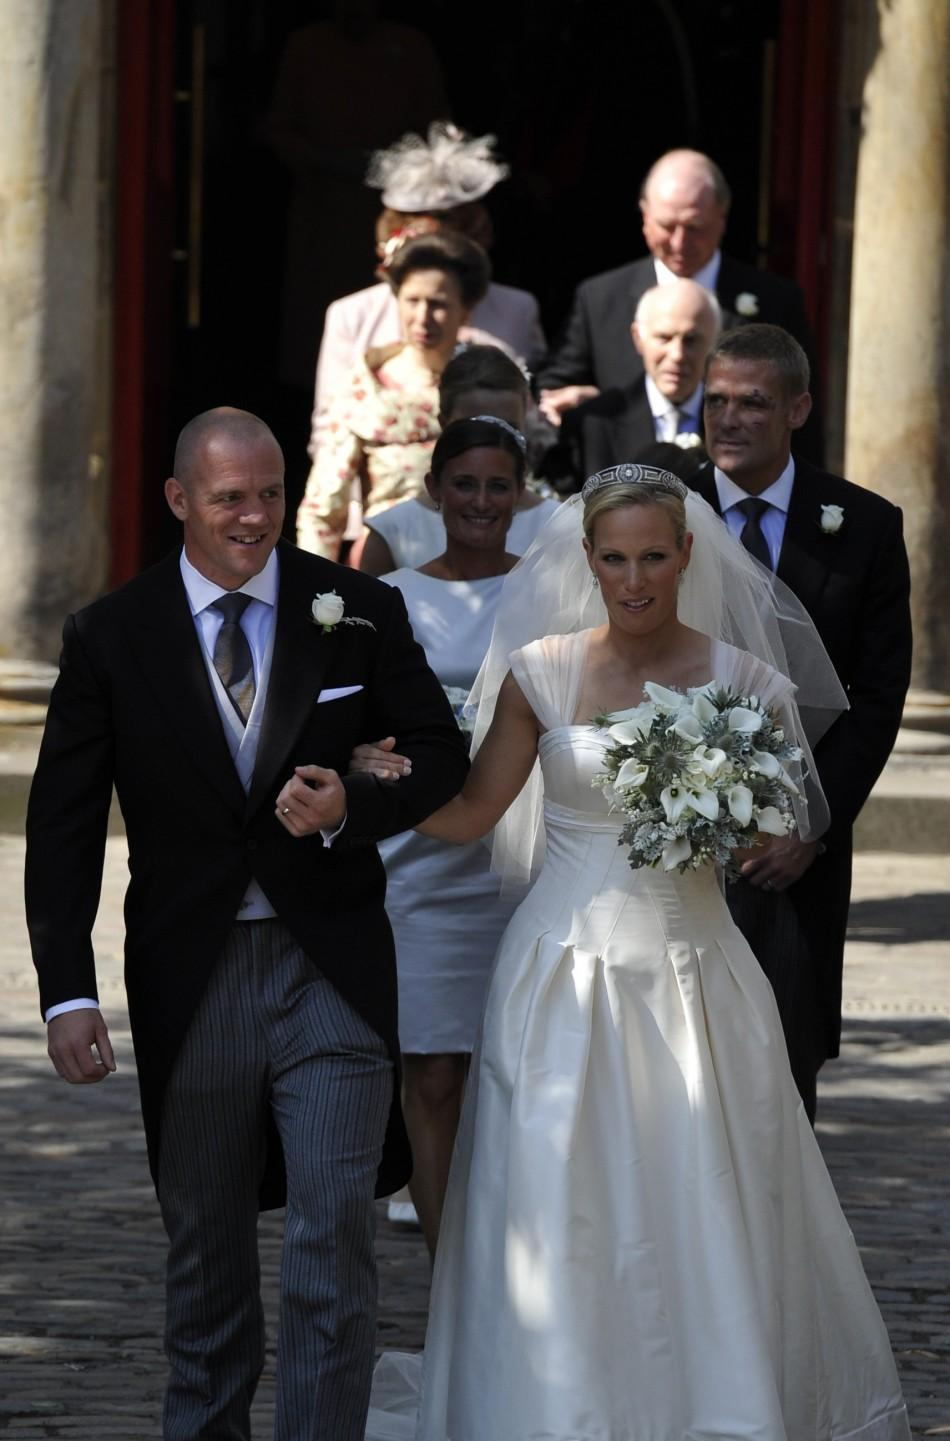 Britain's Zara Phillips and her husband England rugby captain Mike Tindall leave the church after their marriage at Canongate Kirk in Edinburgh